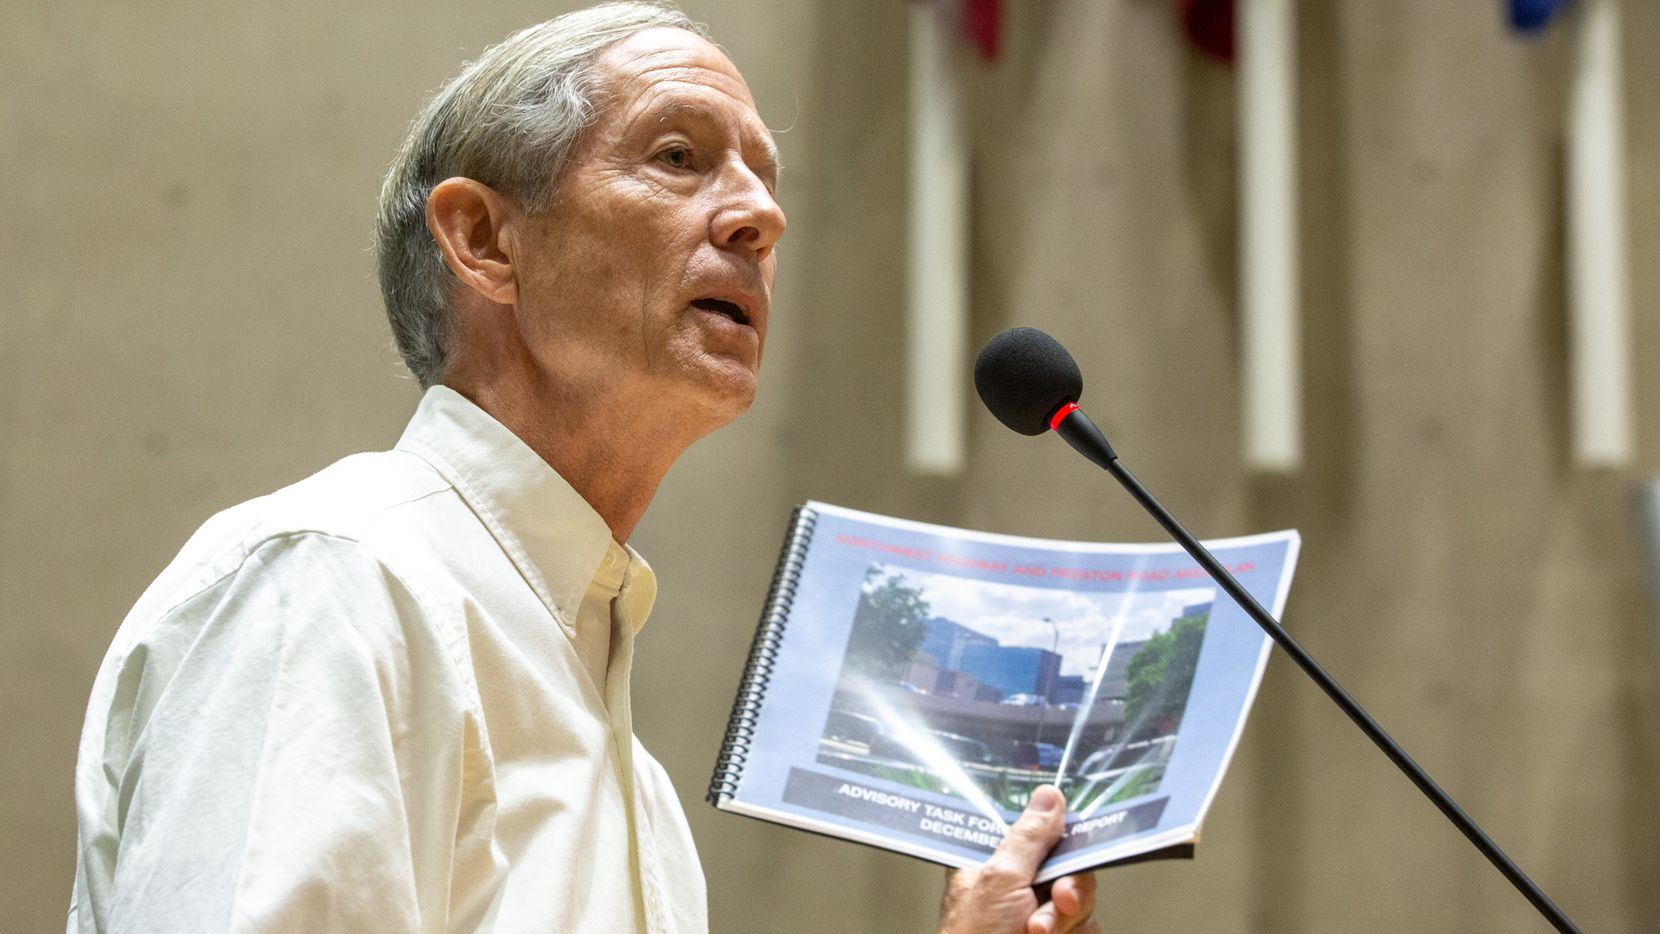 Steve Dawson addressed the Dallas City Council in September about a controversial plan to build high-rise homes in the affluent Preston Hollow neighborhood. A new law requires governing bodies to either allow members of the public to speak on scheduled agenda items at the beginning of a meeting or during each agenda item.